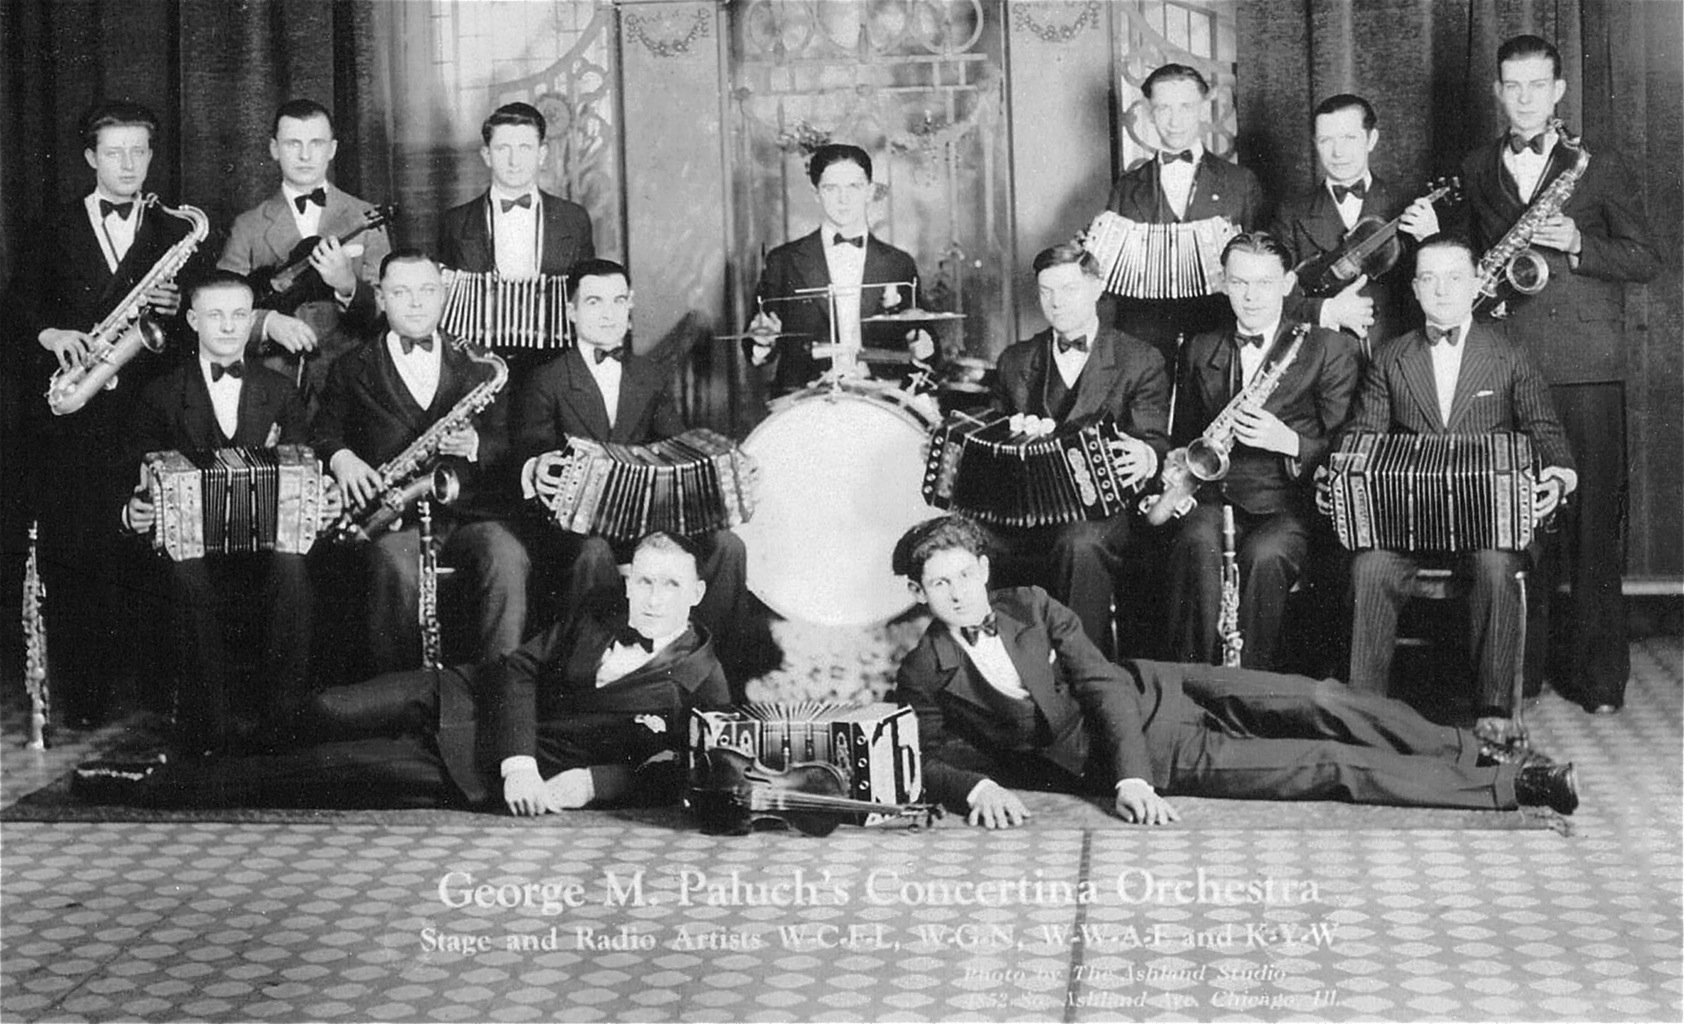 George M. Paluch's Concertina Orchestra